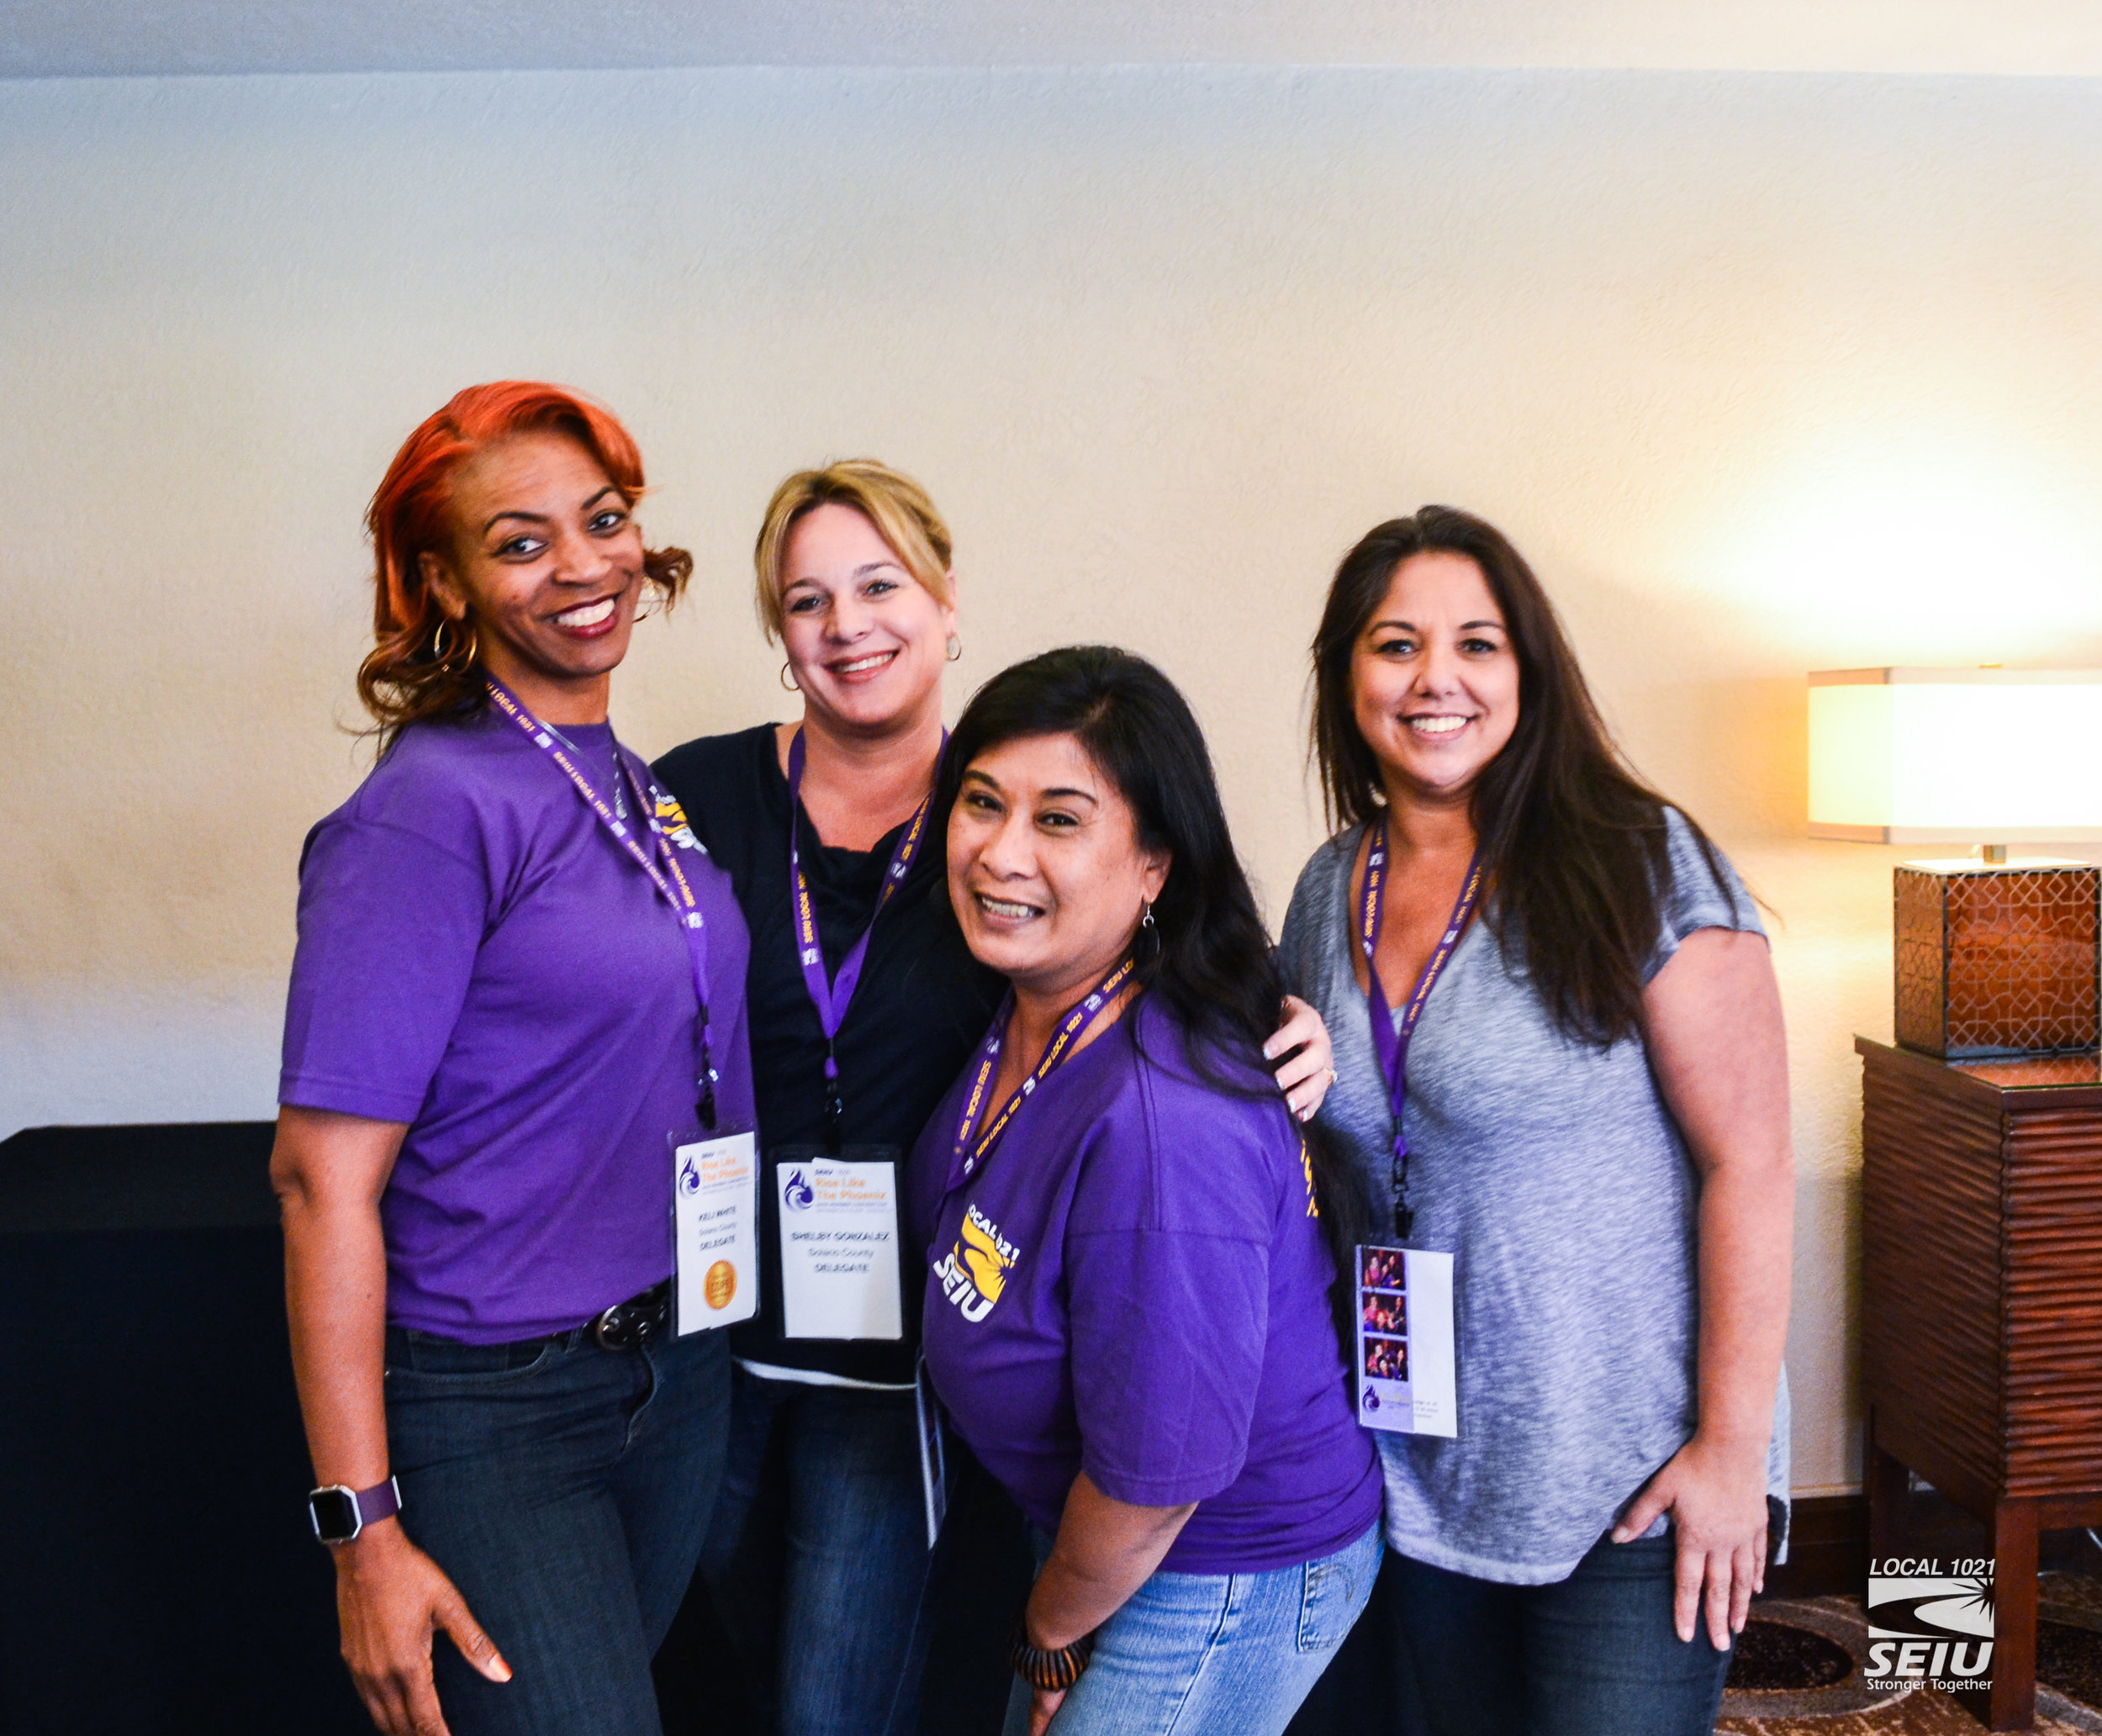 SEIU 1021 Convention Group Portraits-65.jpg